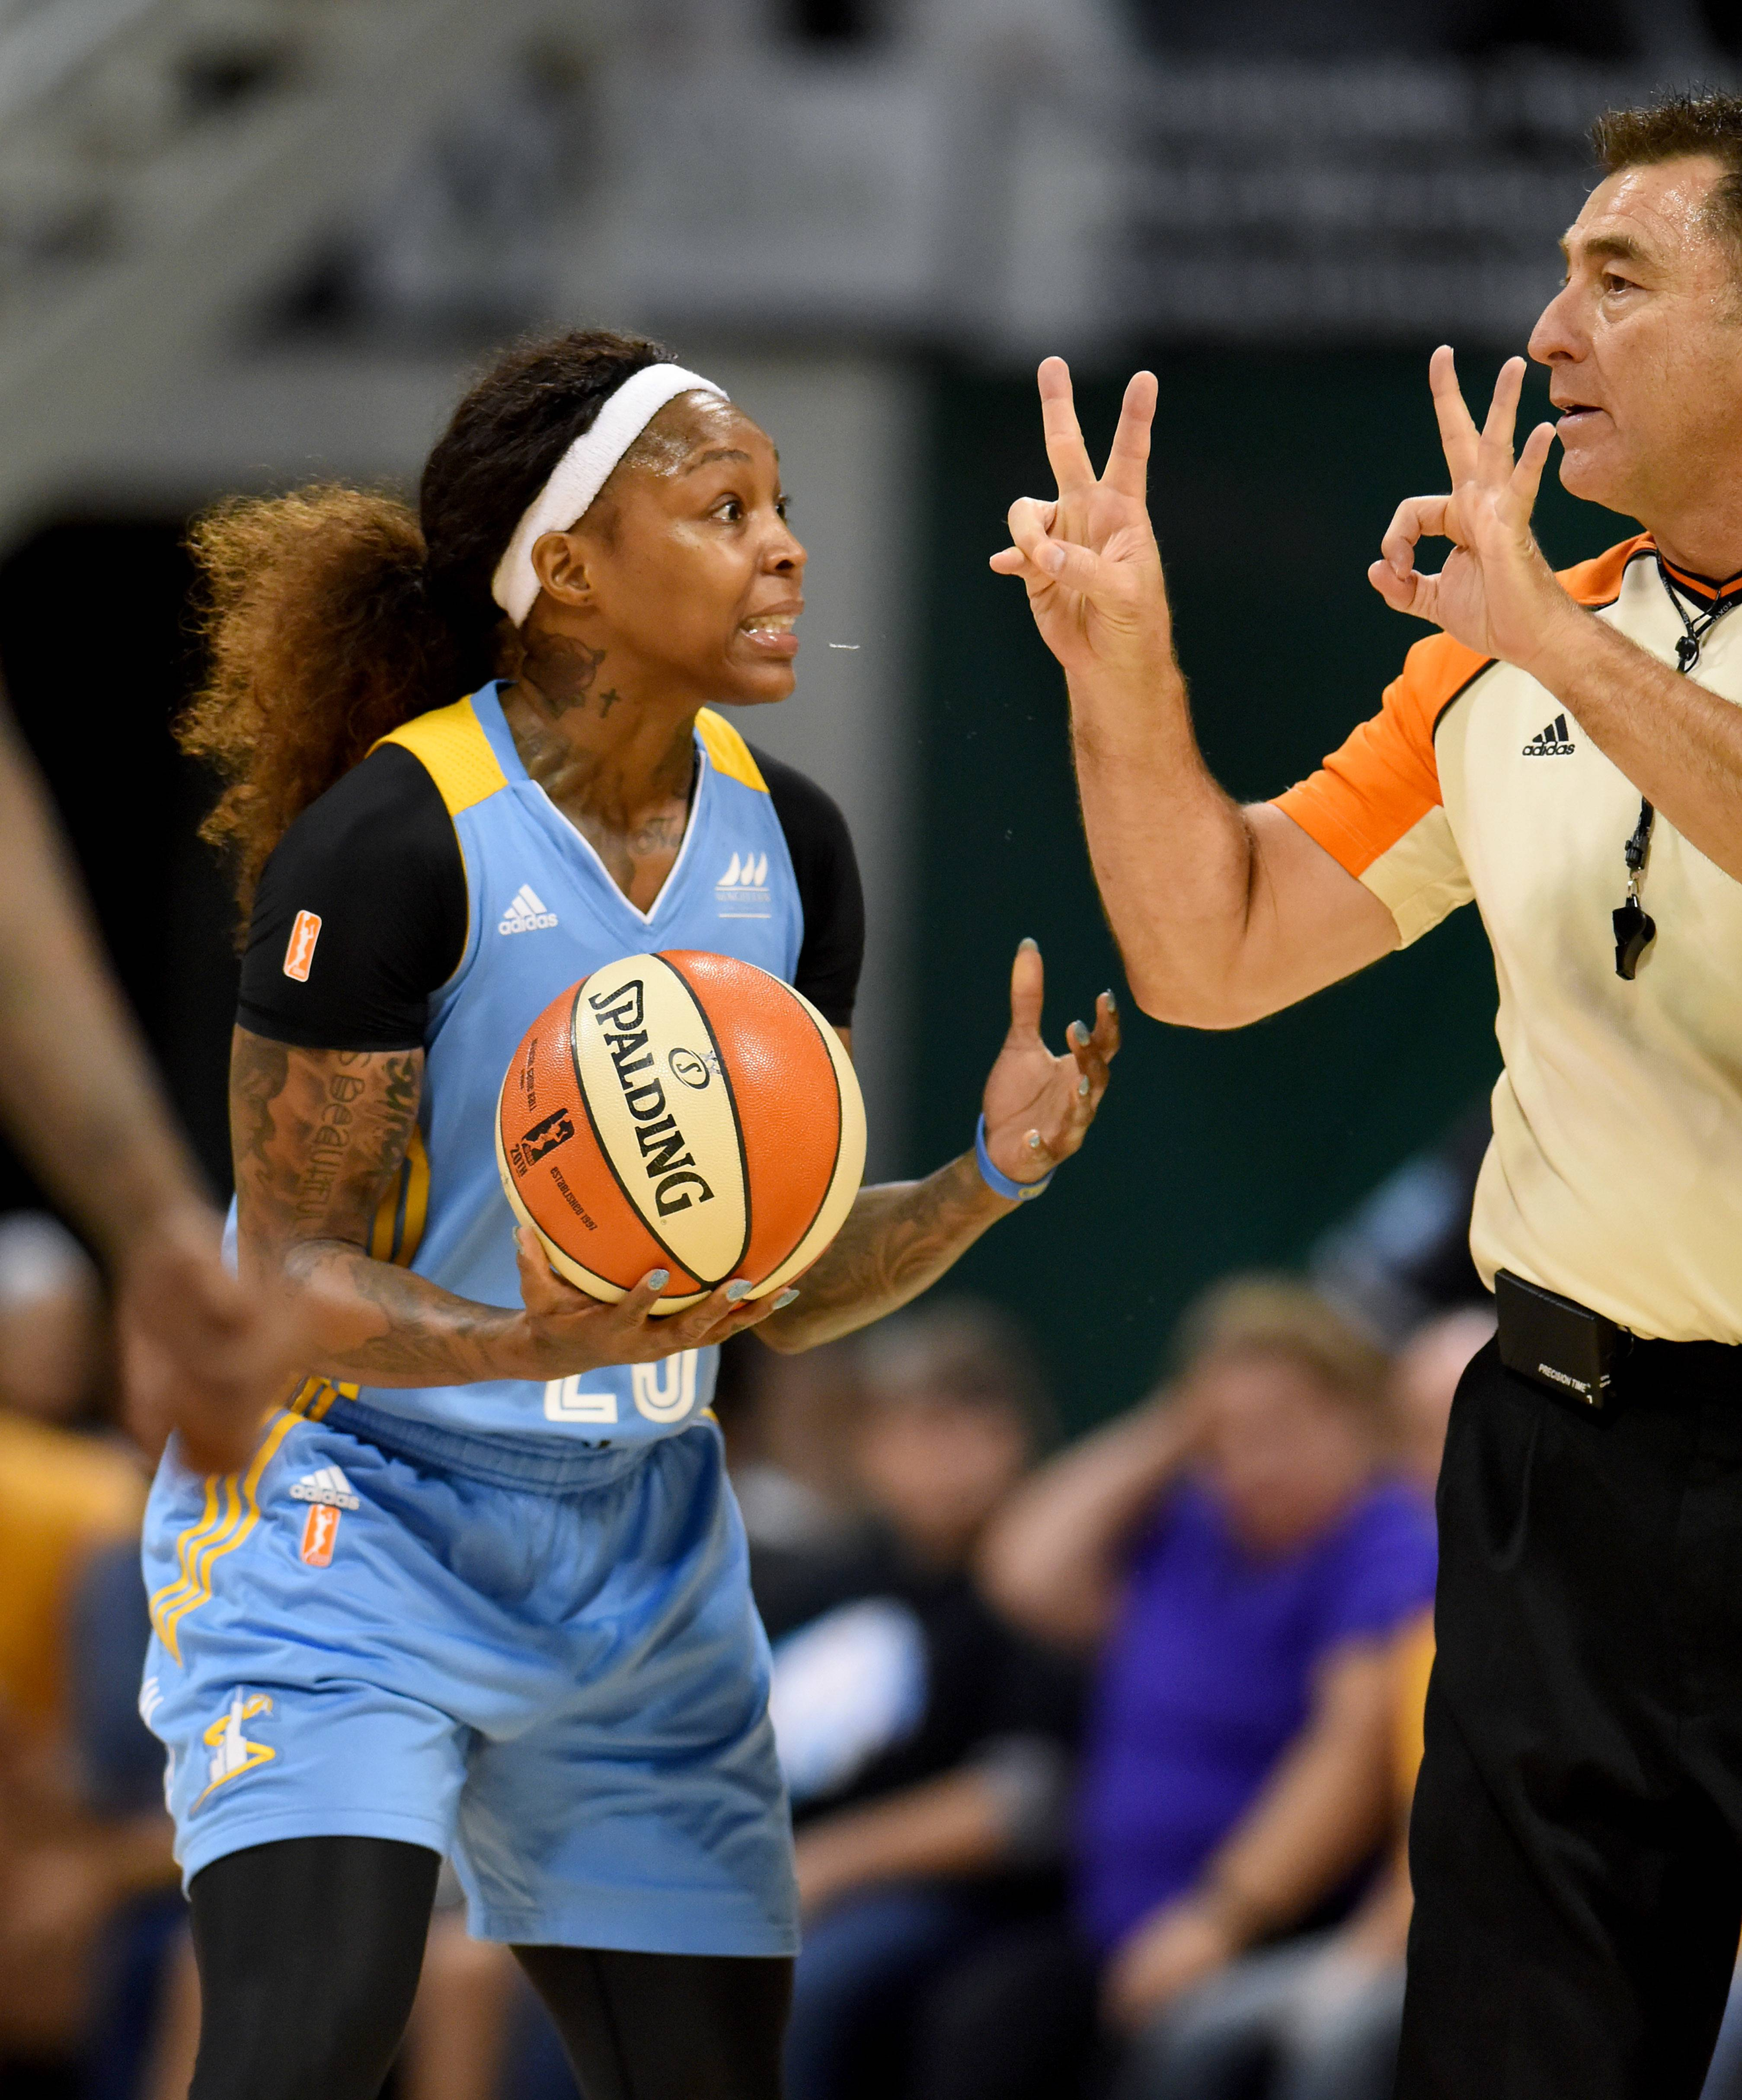 The Chicago Sky and veteran guarde Cappie Pondexter will host the Los Angeles Sparks on Sunday for Game 3 of their WNBA playoff series.